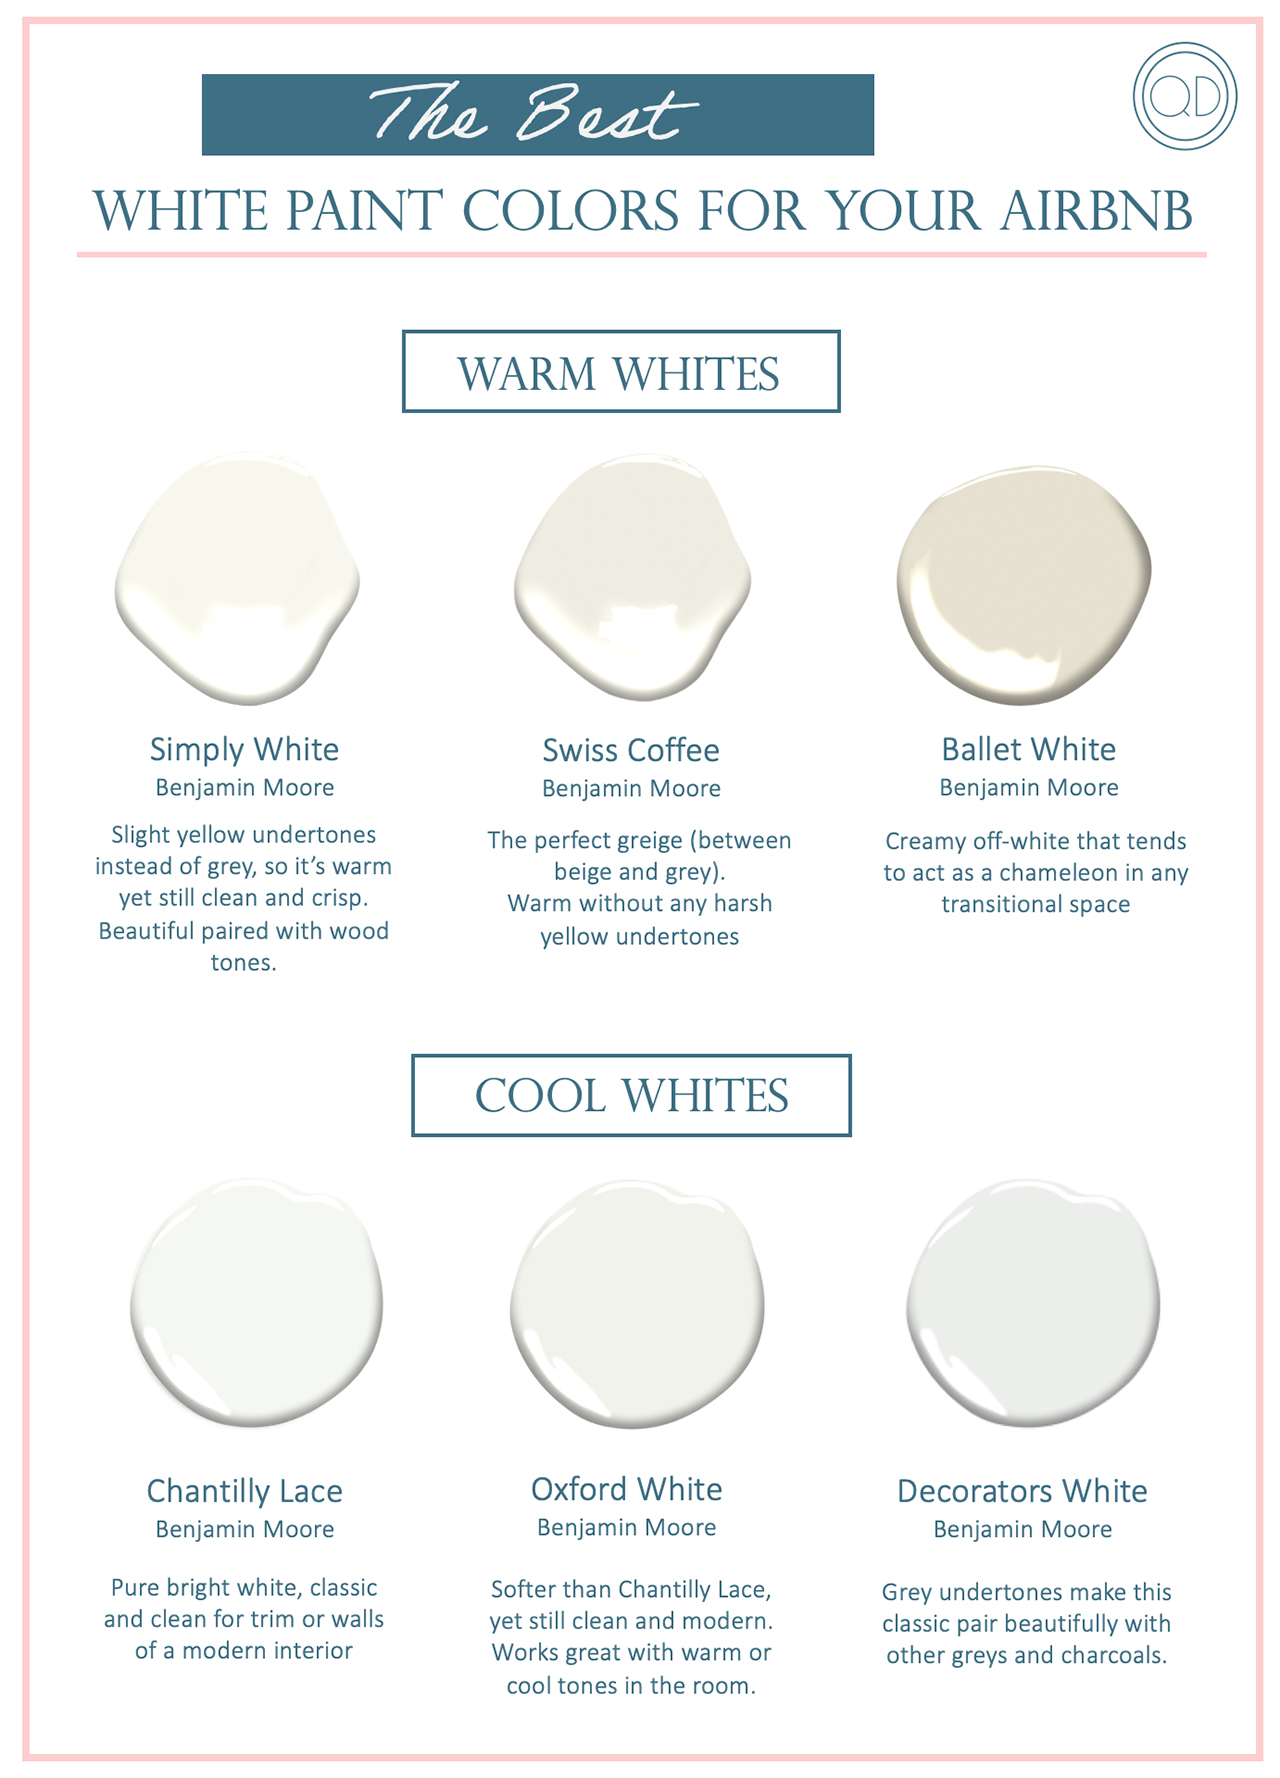 The Smartest Color Advice And White Paint Colors For Your Airbnb,Small Closet Organization Hacks